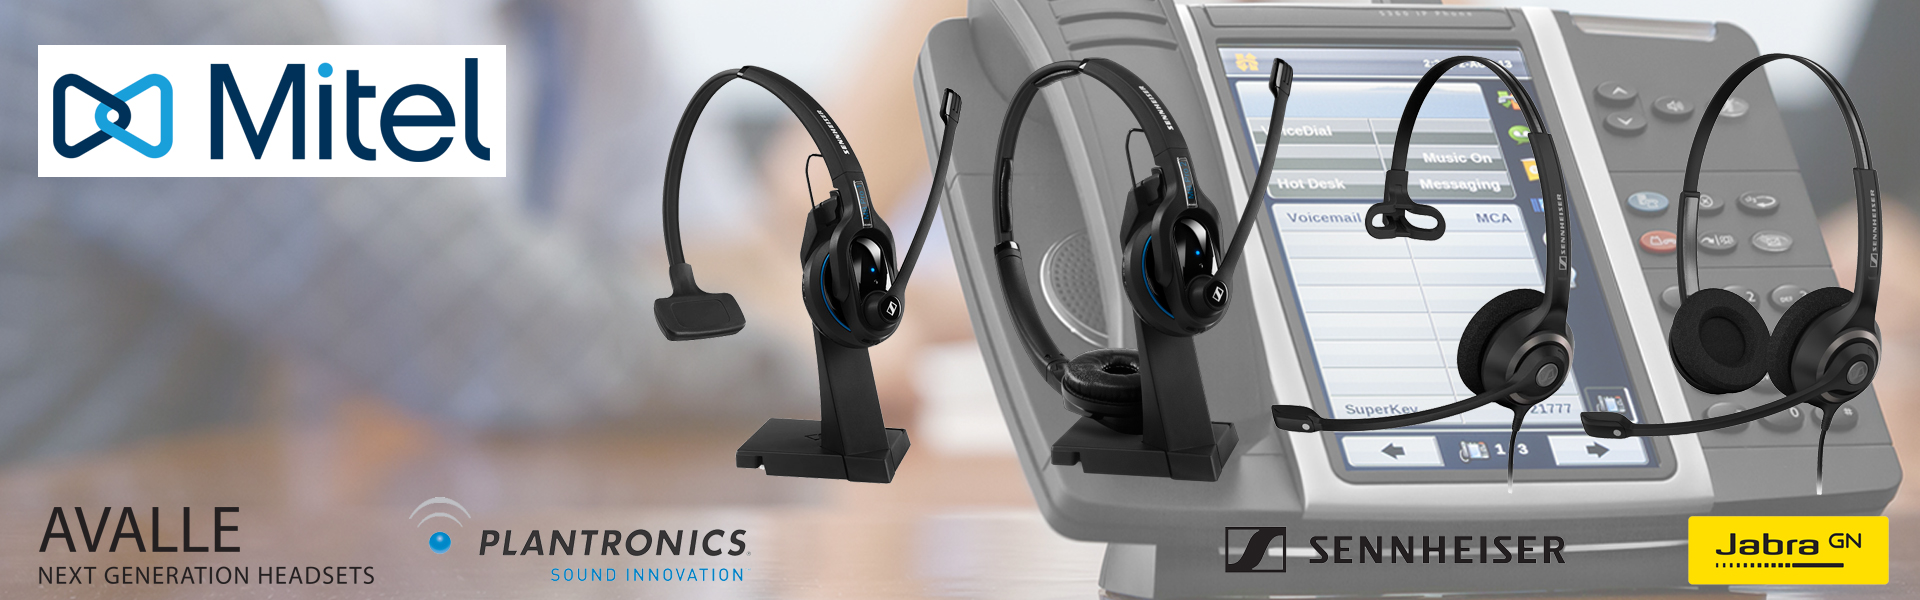 Headsets for Mitel